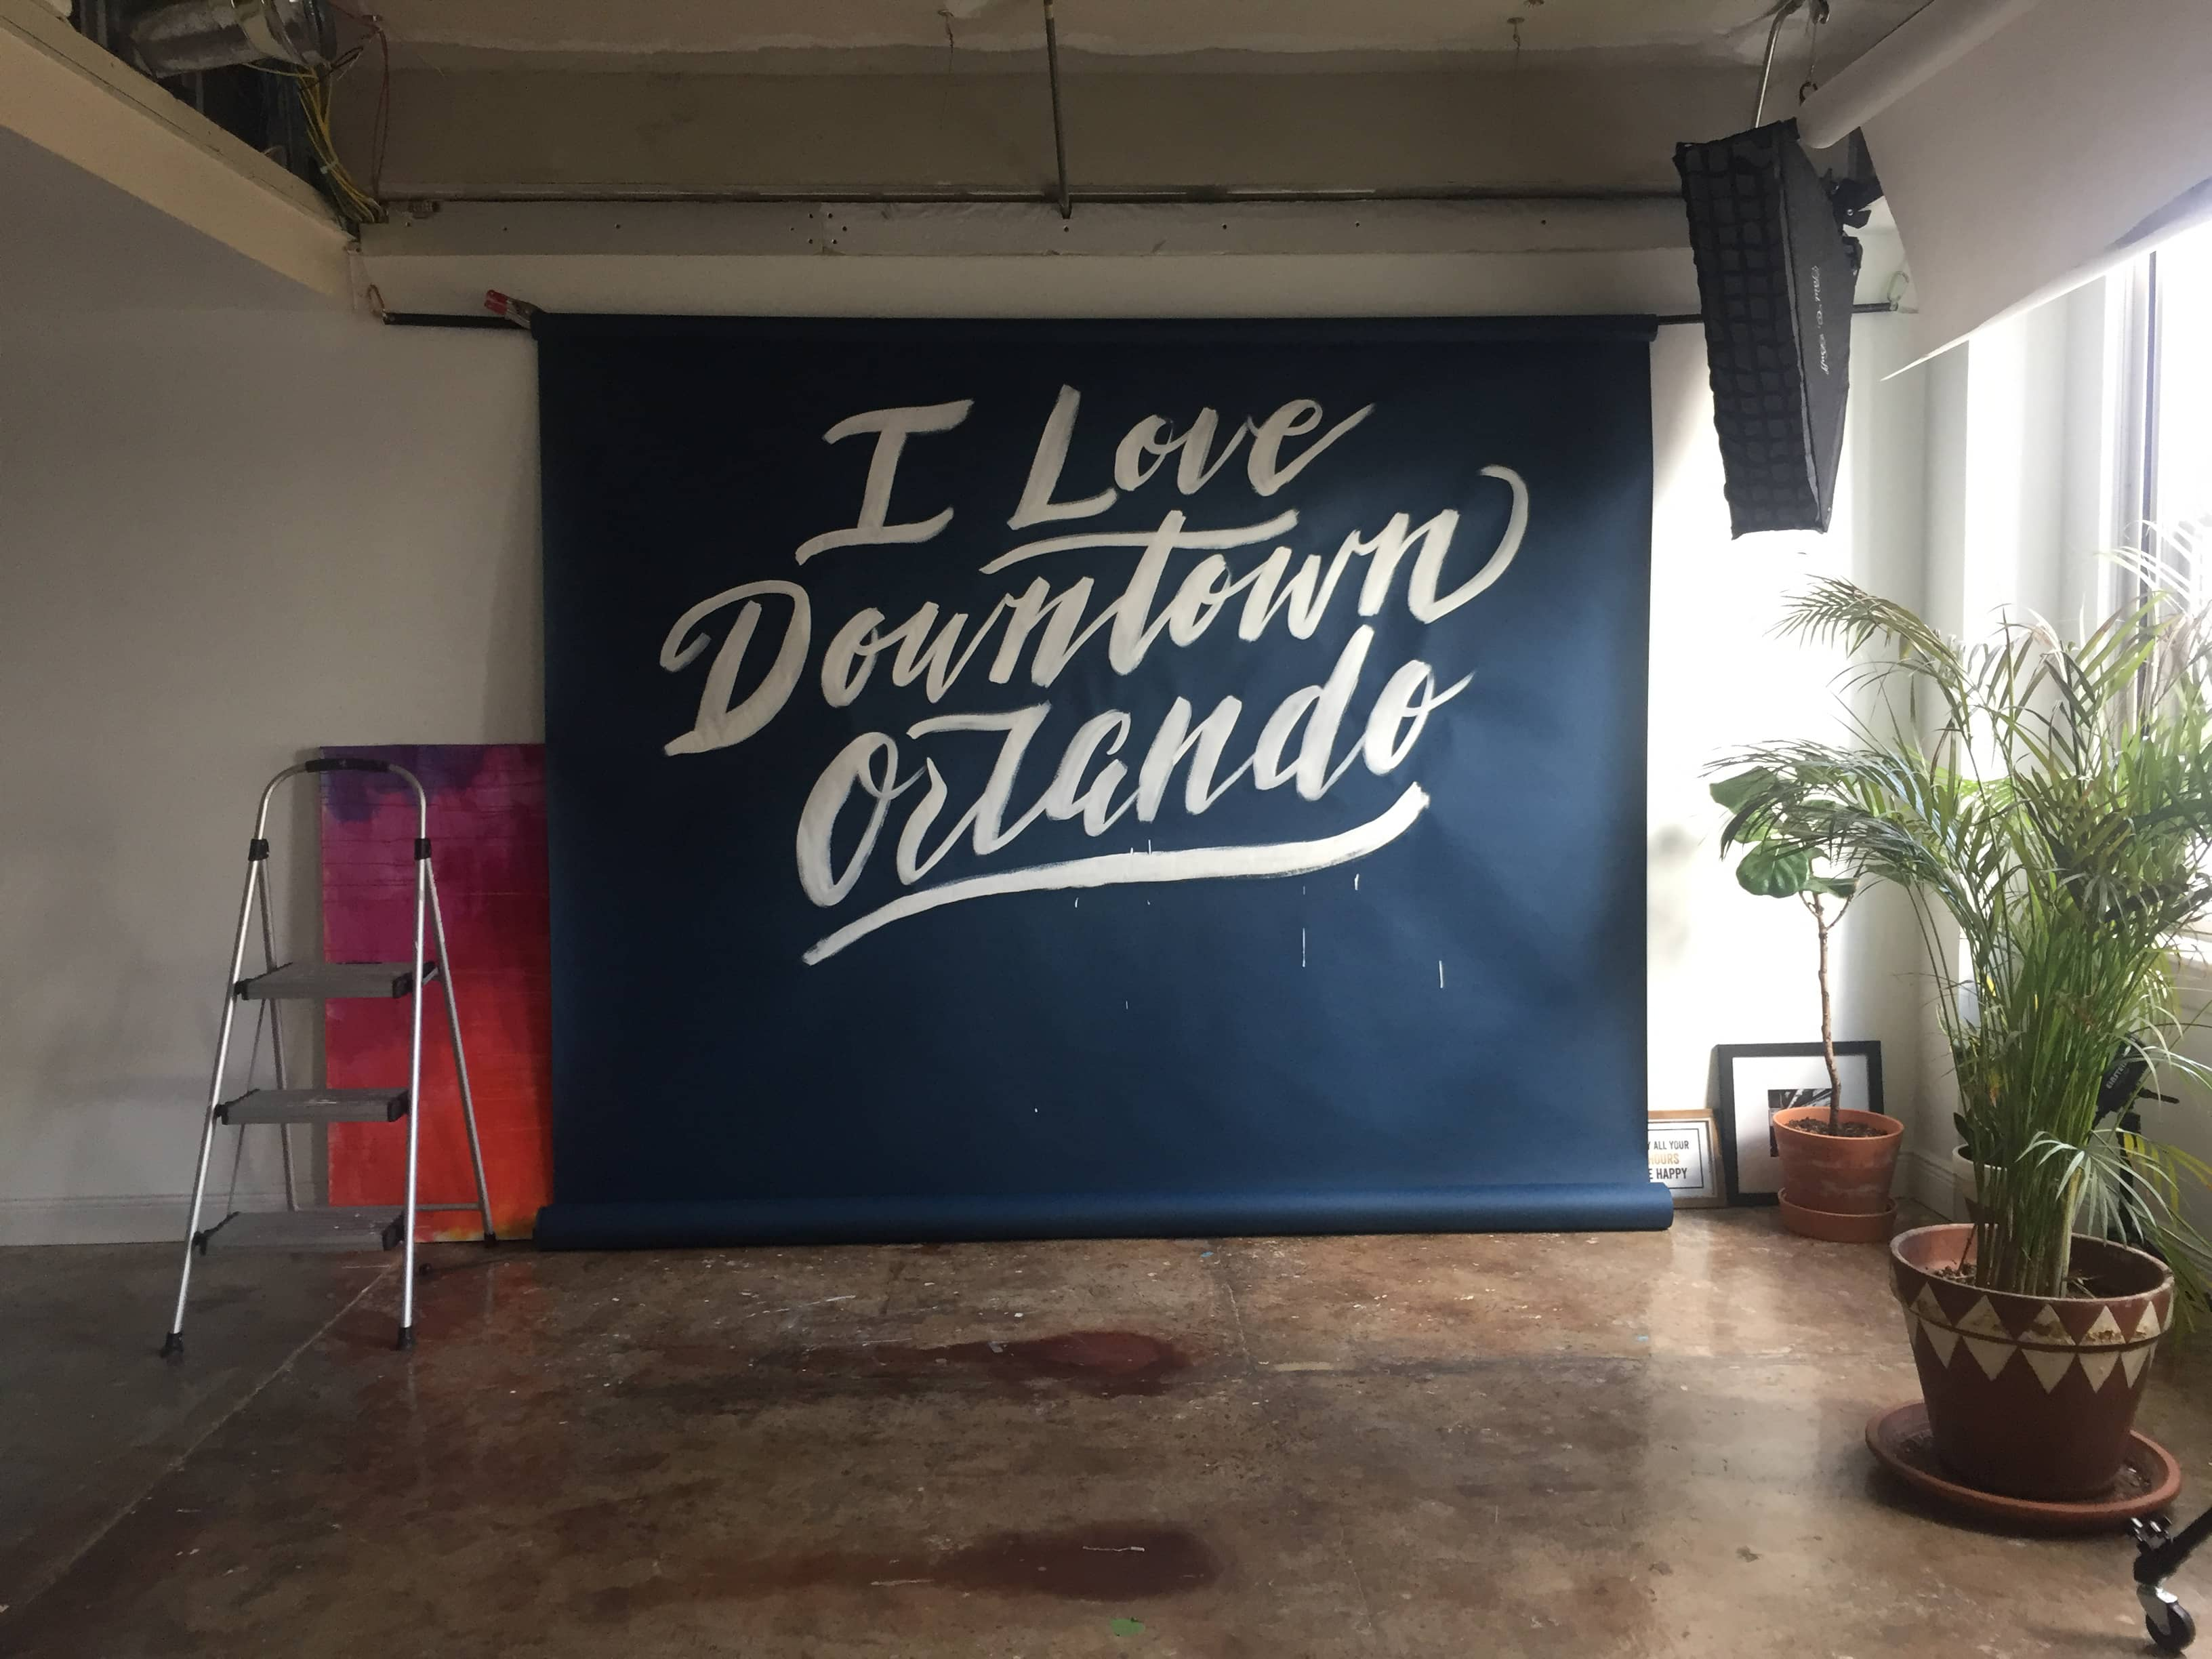 I Love Downtown Orlando hand lettered backdrop for DOP